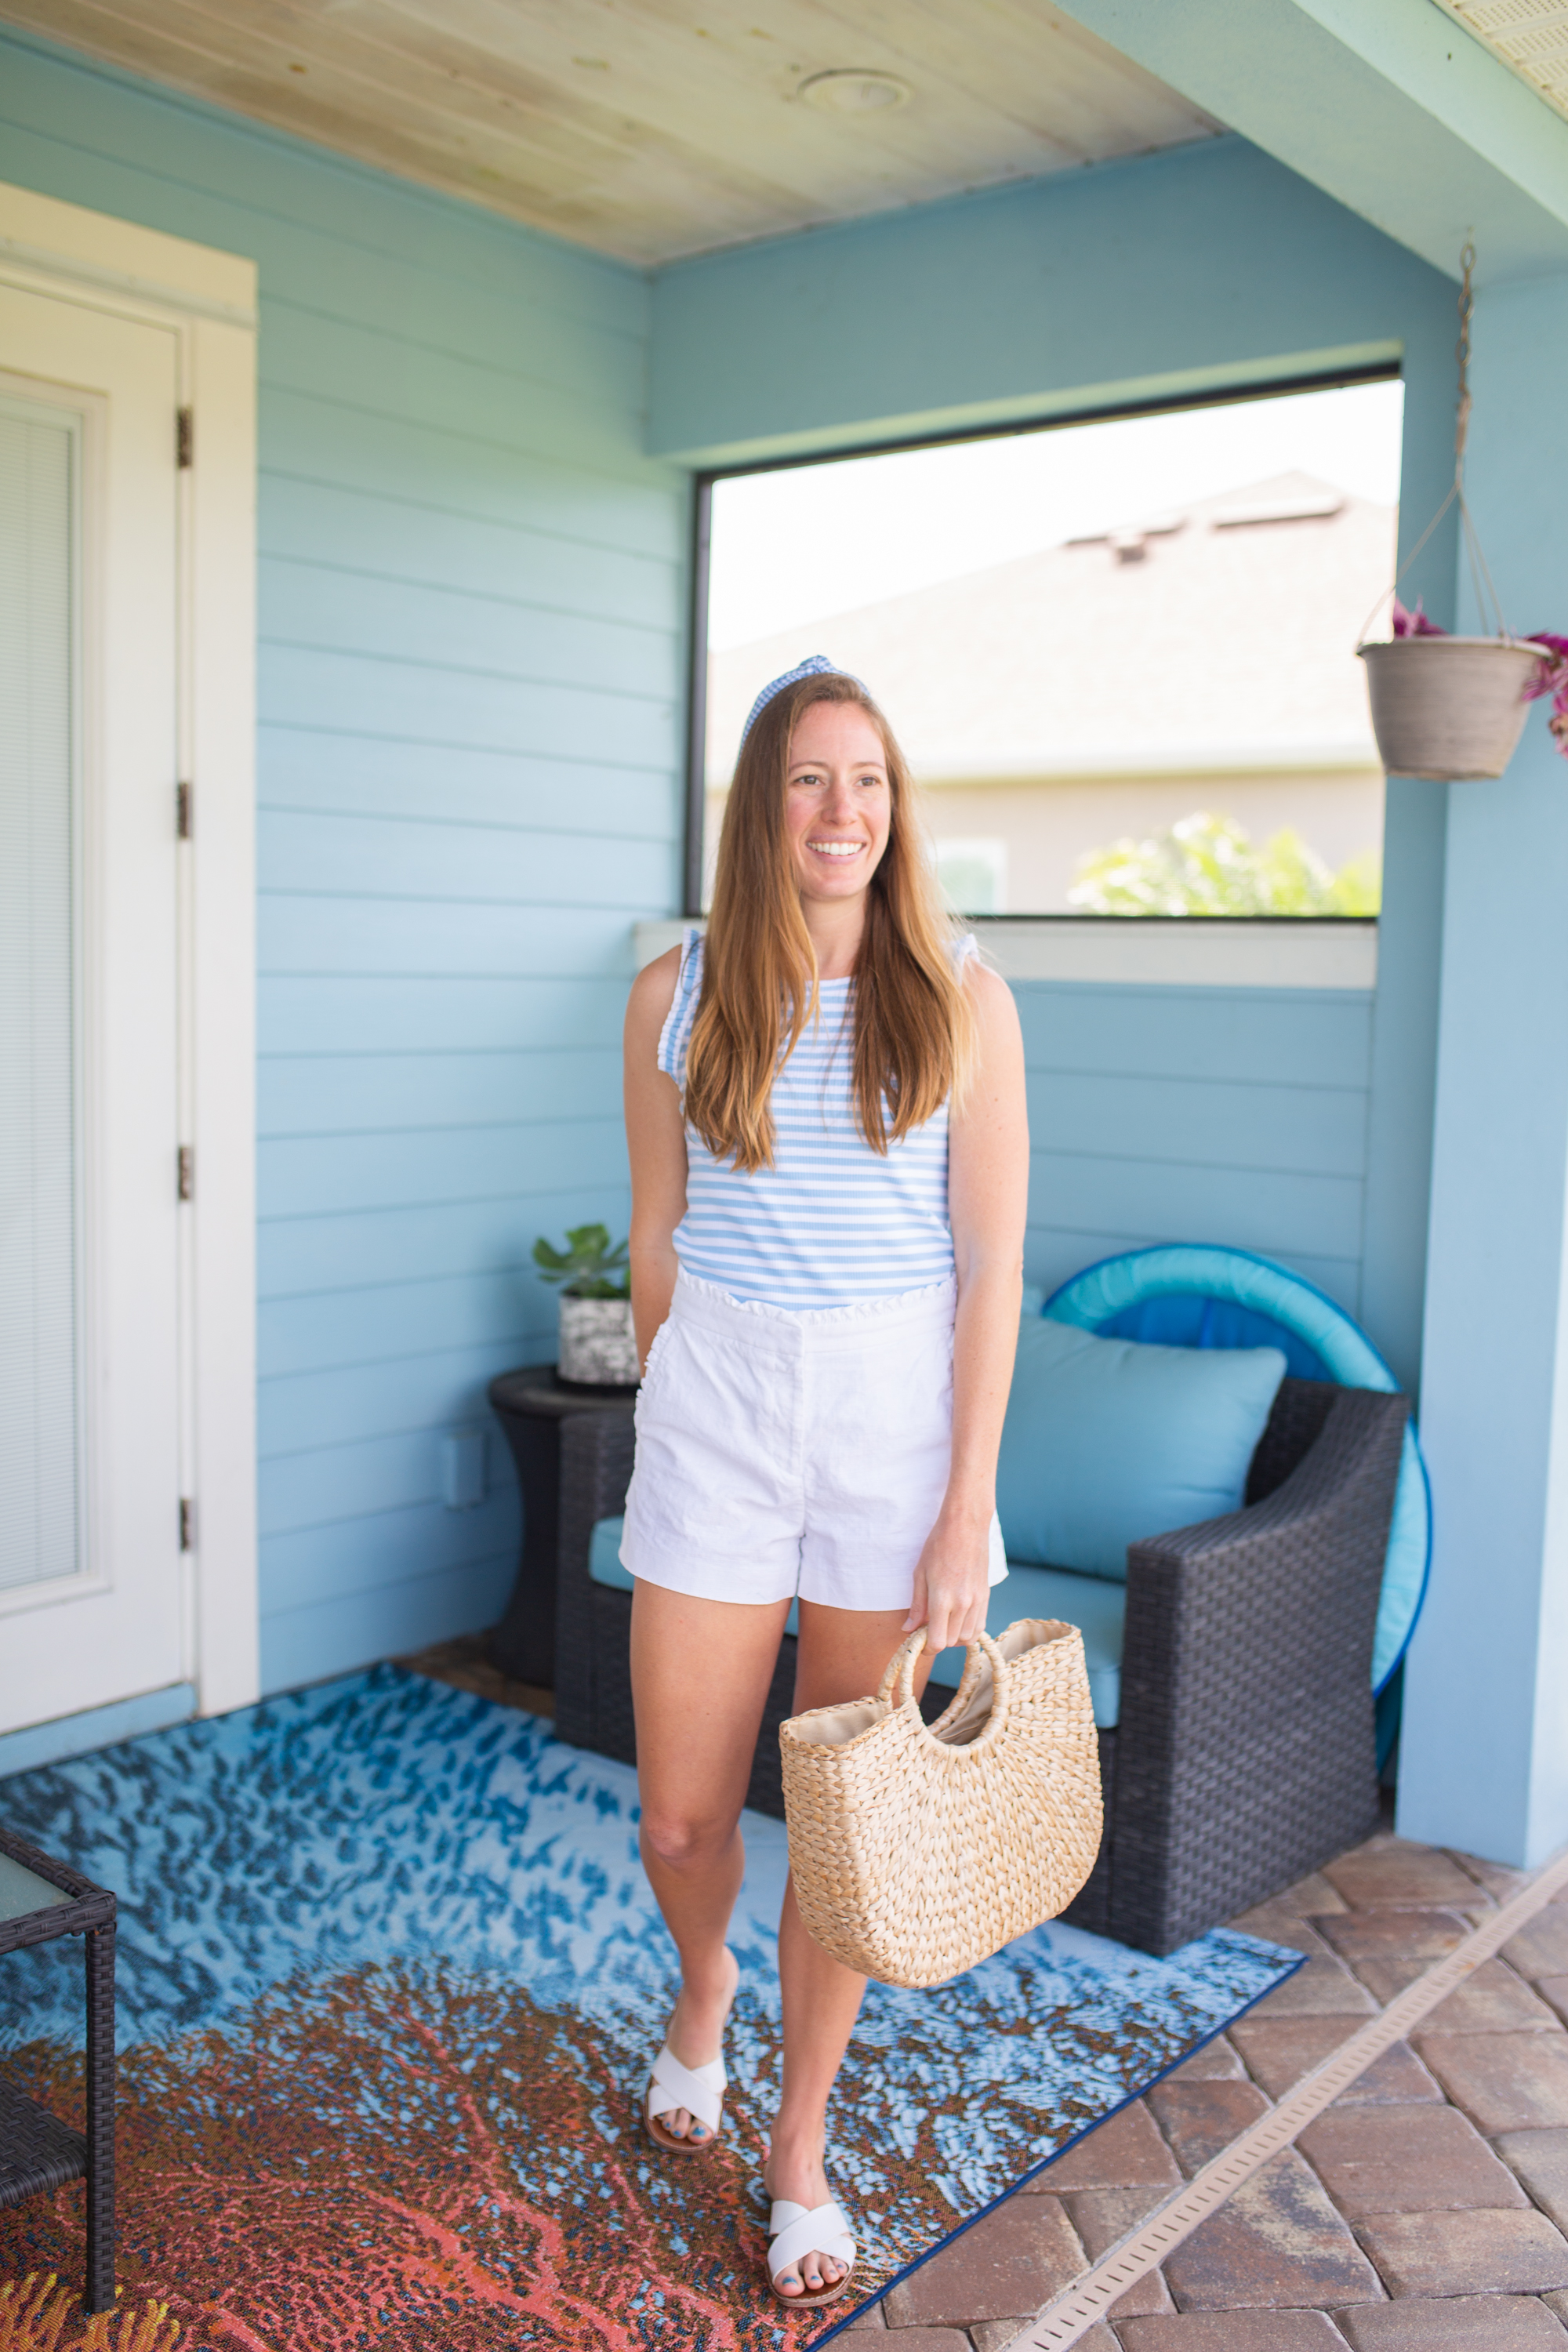 Cute Summer Outfits / Beach Outfit / Outfit Ideas for Summer / Summer Outfit Ideas / Cute Beach Outfits / Summer Style / cute casual summer outfits - Sunshine Style, A Florida Fashion and Lifestyle Blog by Katie